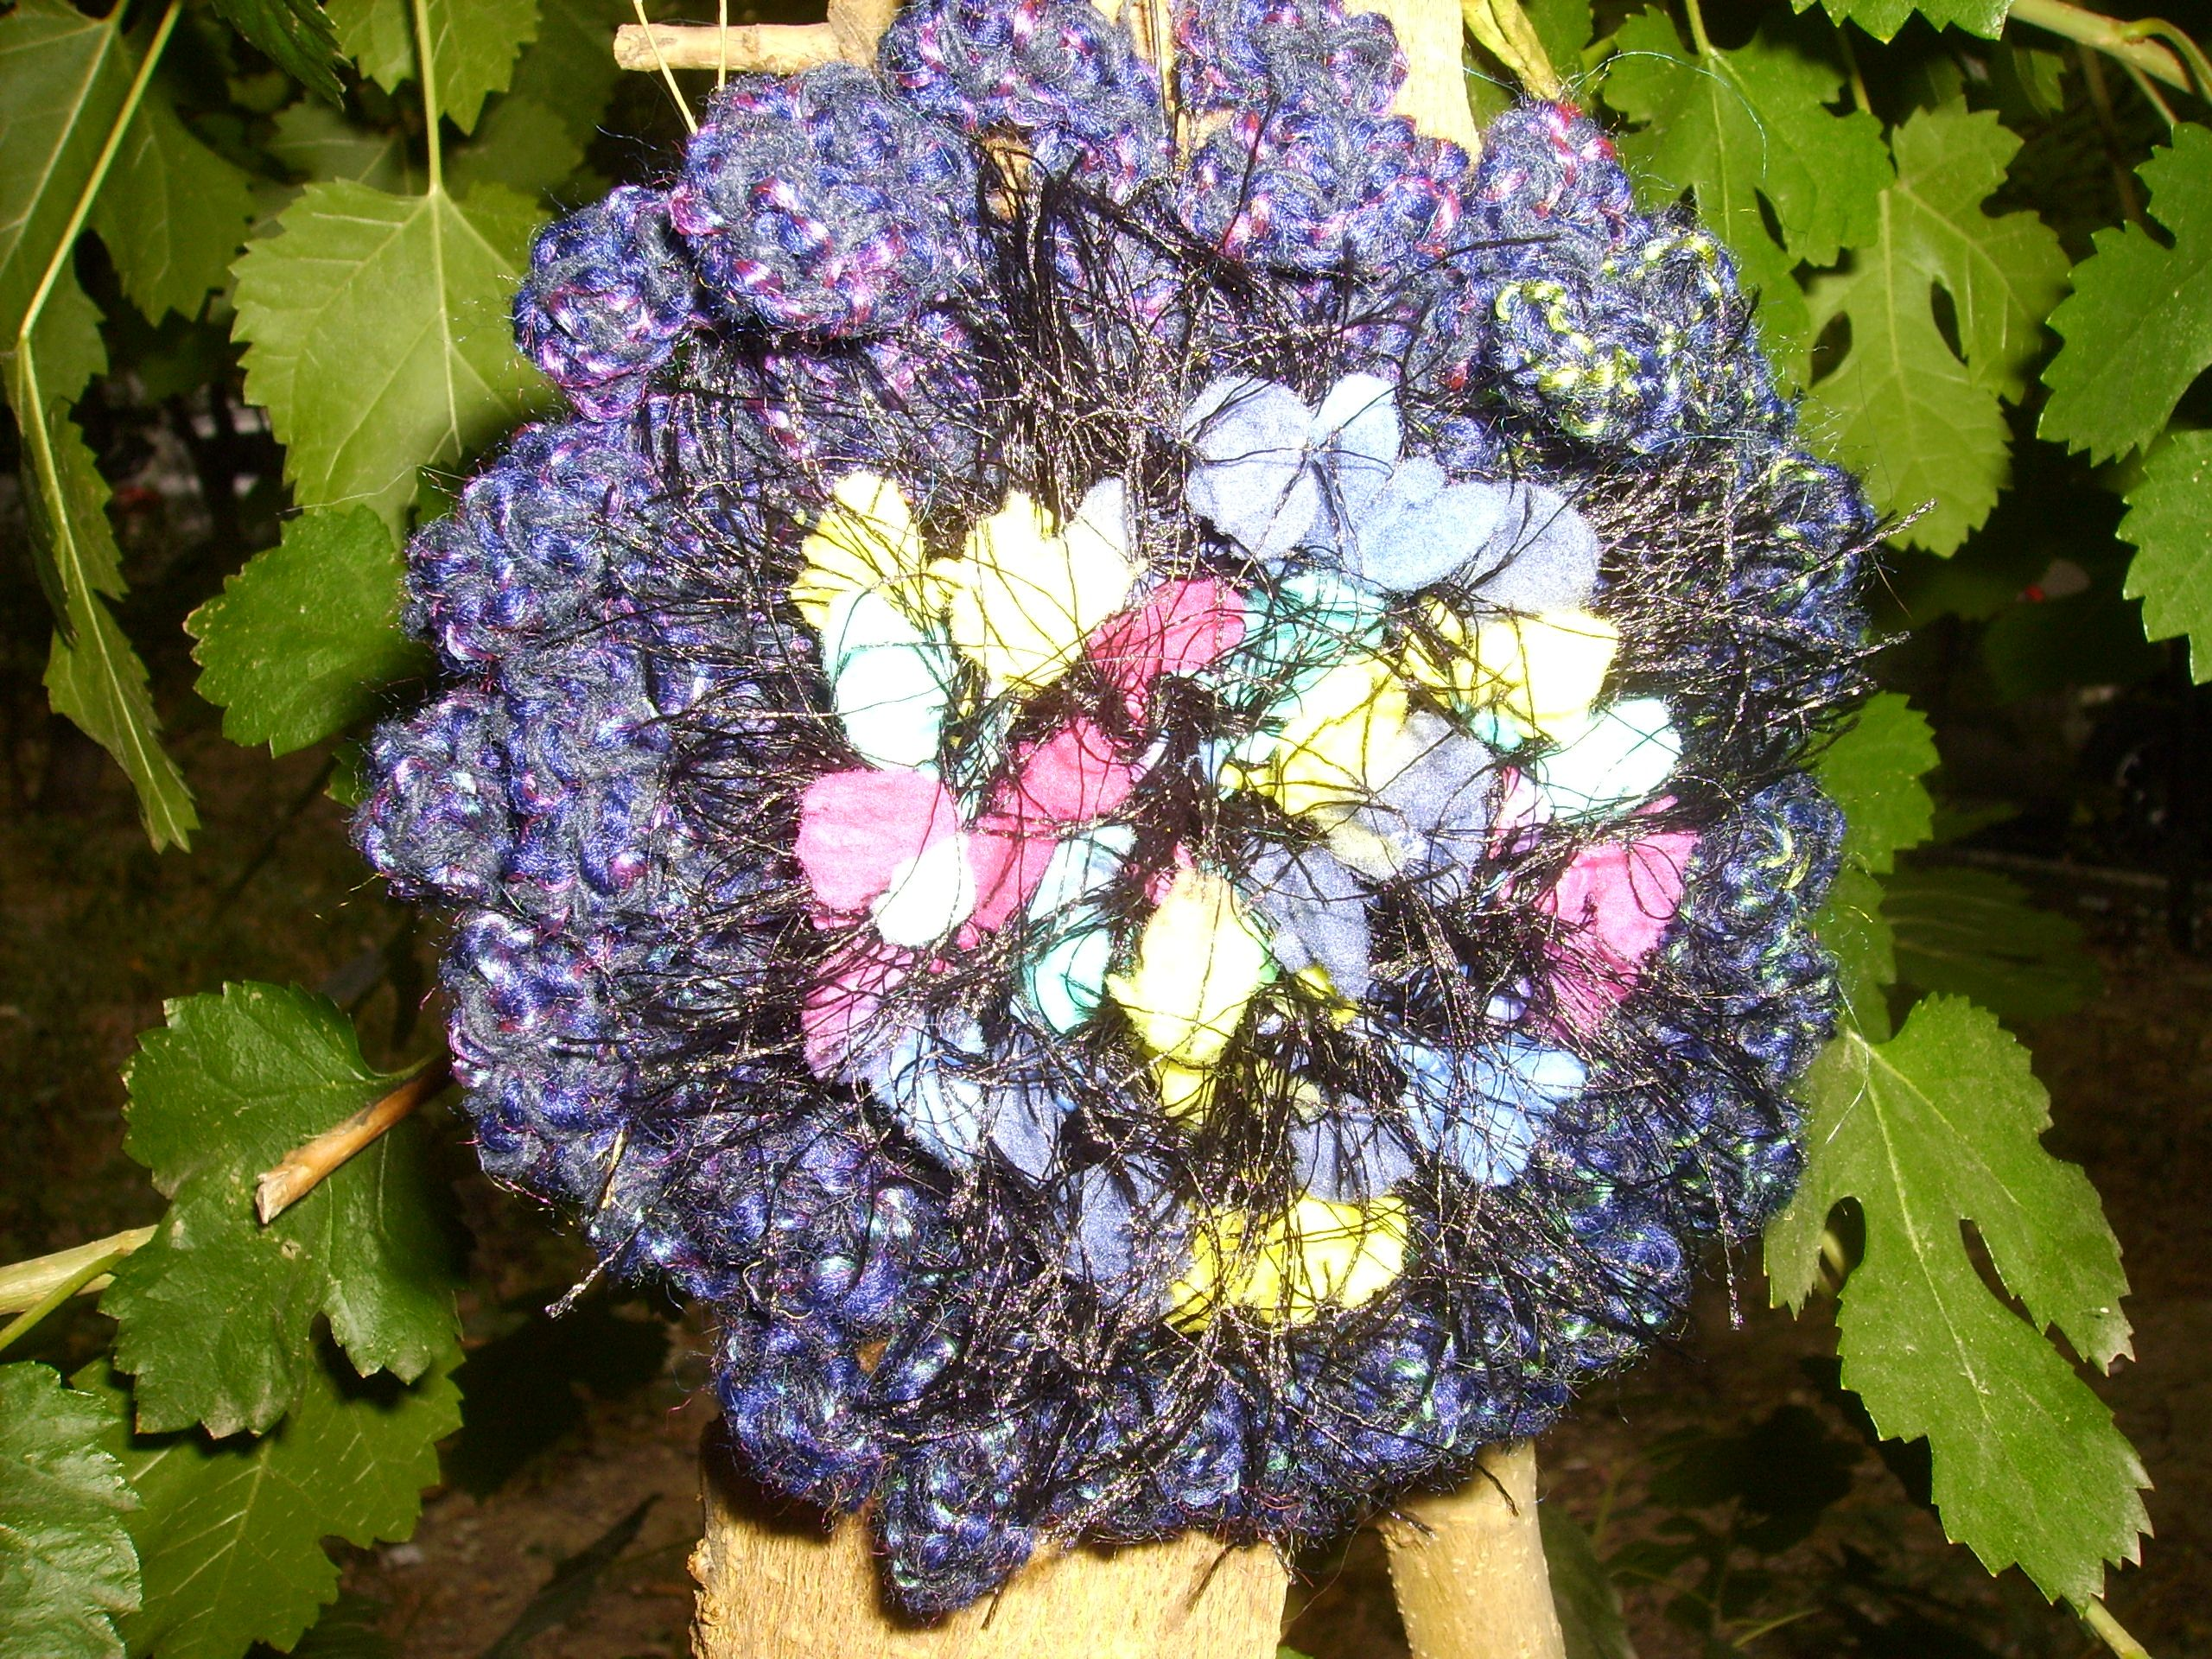 crocheted things pin flower bonthuishouden make brooch i nl